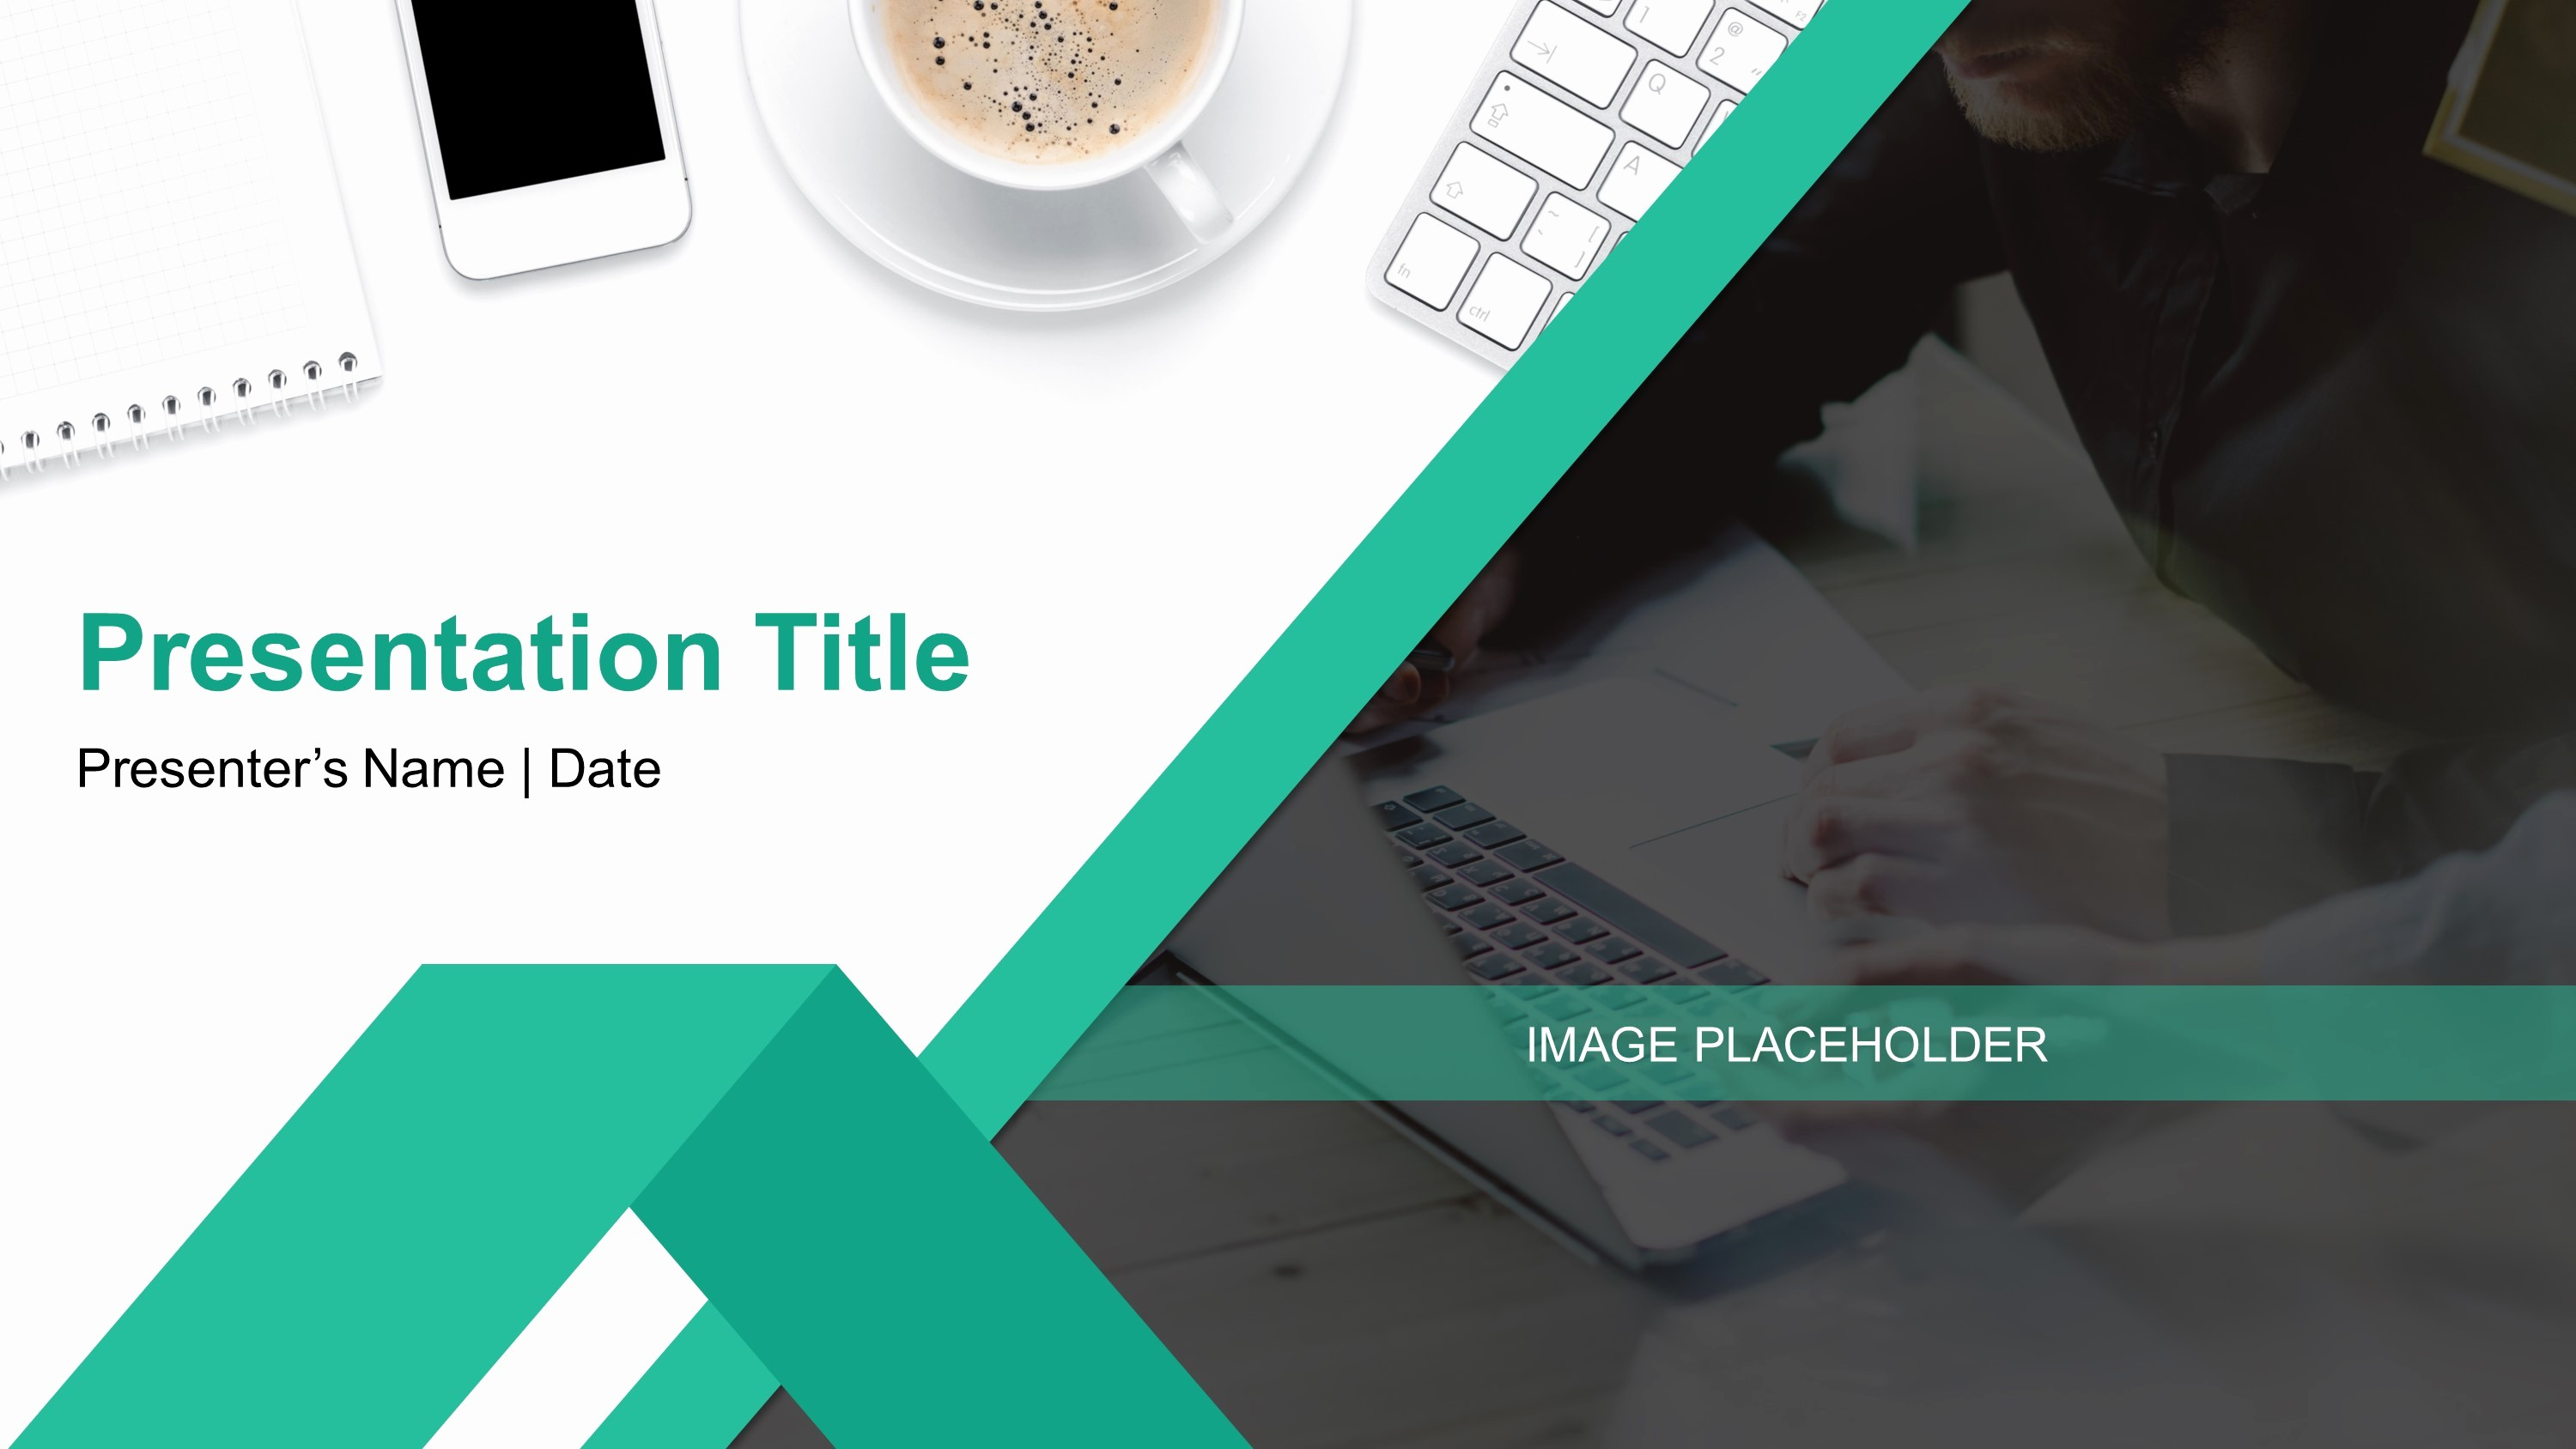 Powerpoint Slide Templates for Business Inspirational Powerpoint Design Service Slides themes for Free